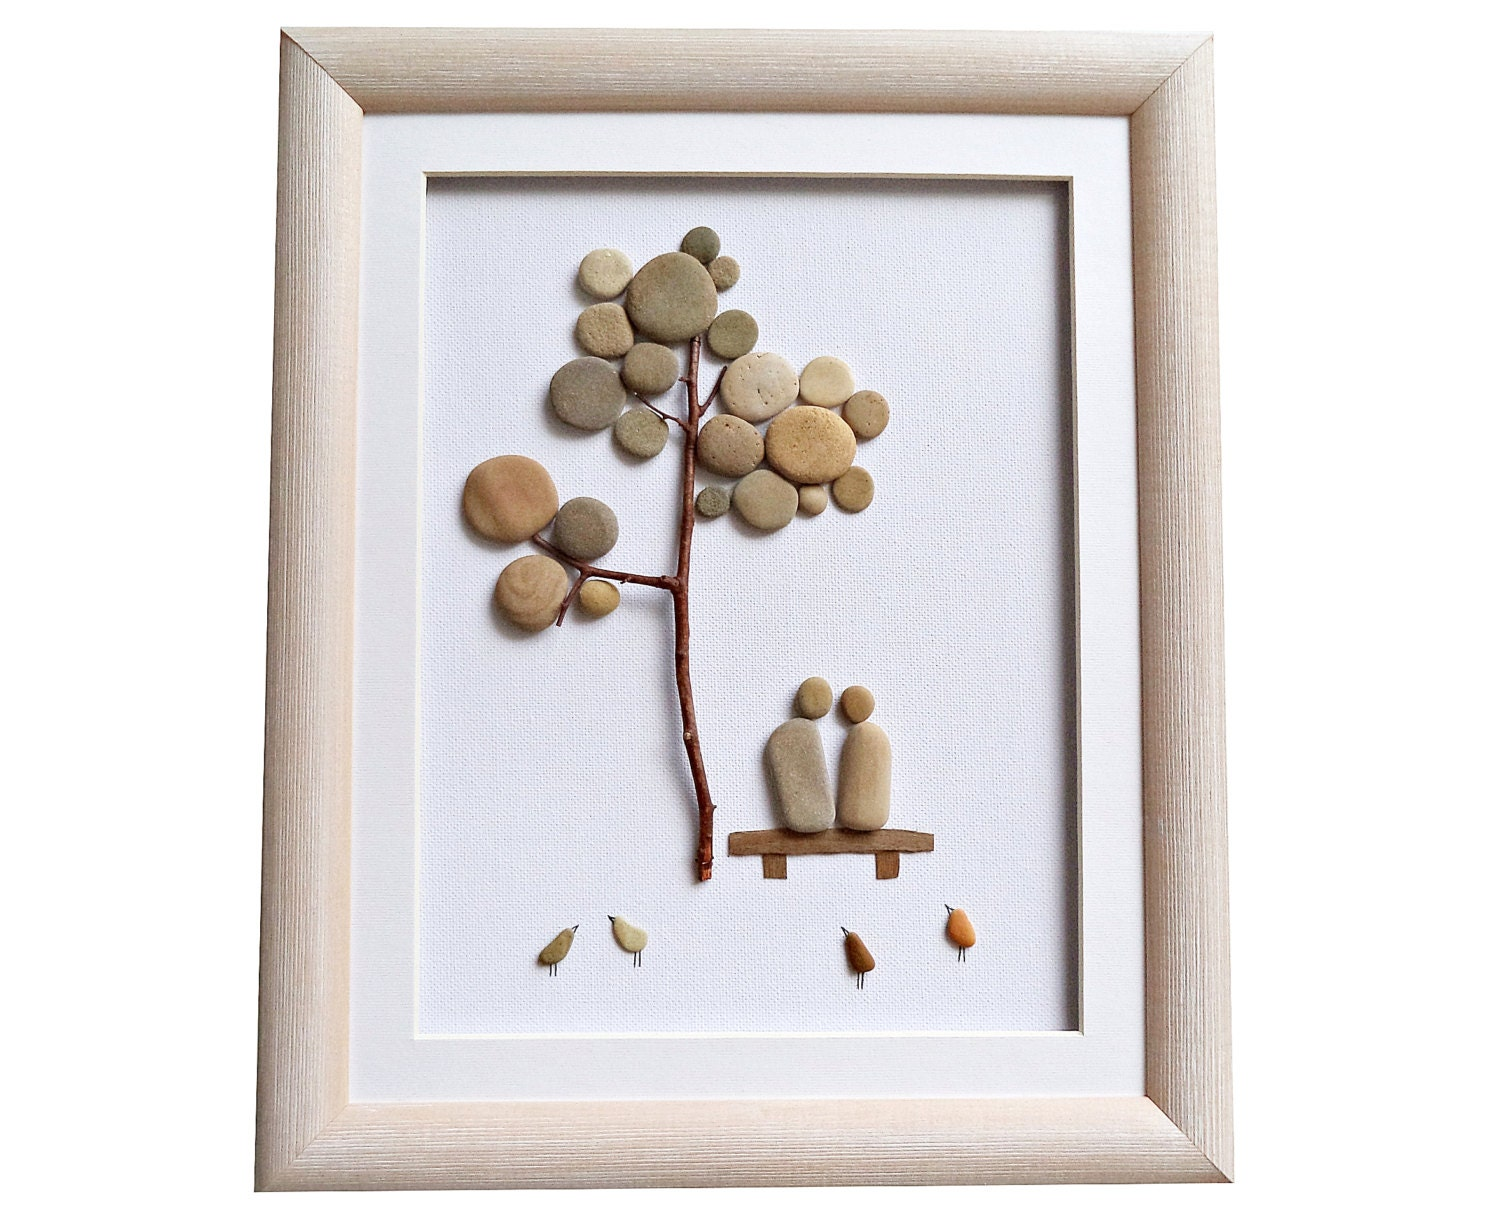 Pebble Art Gift For Engagement Wedding By Pebbleartdream